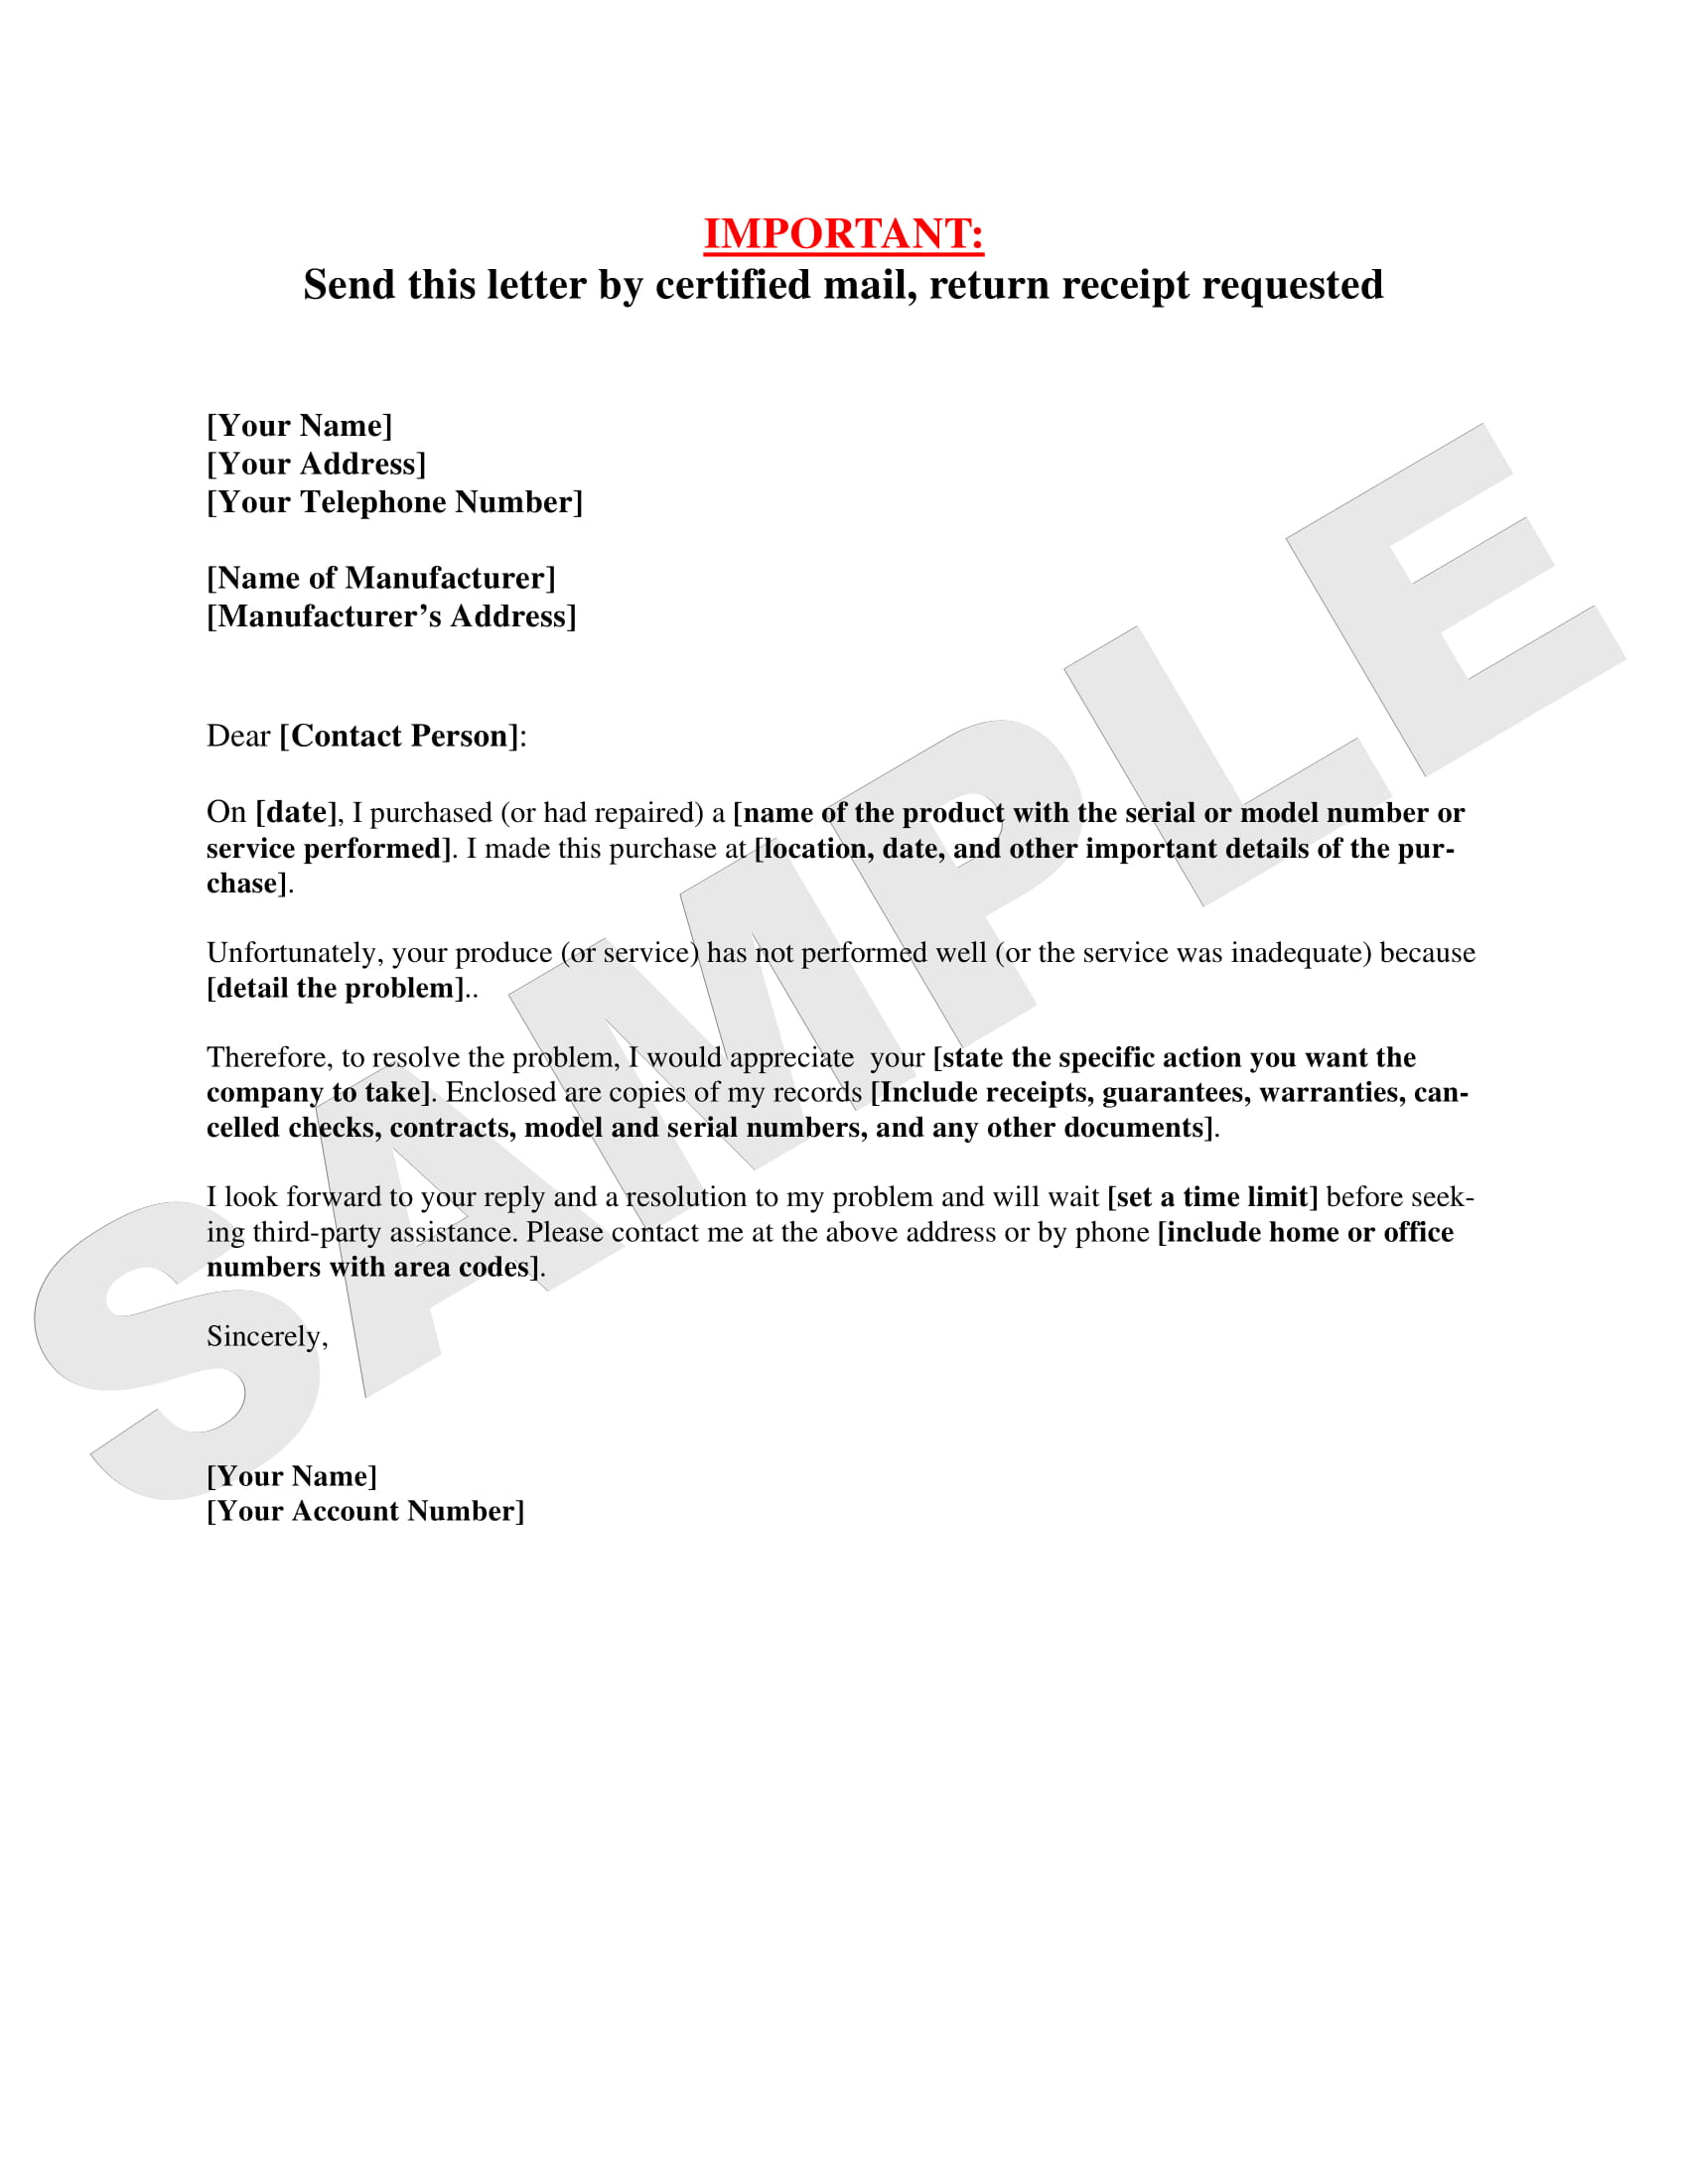 sample letter warranty complaint 1